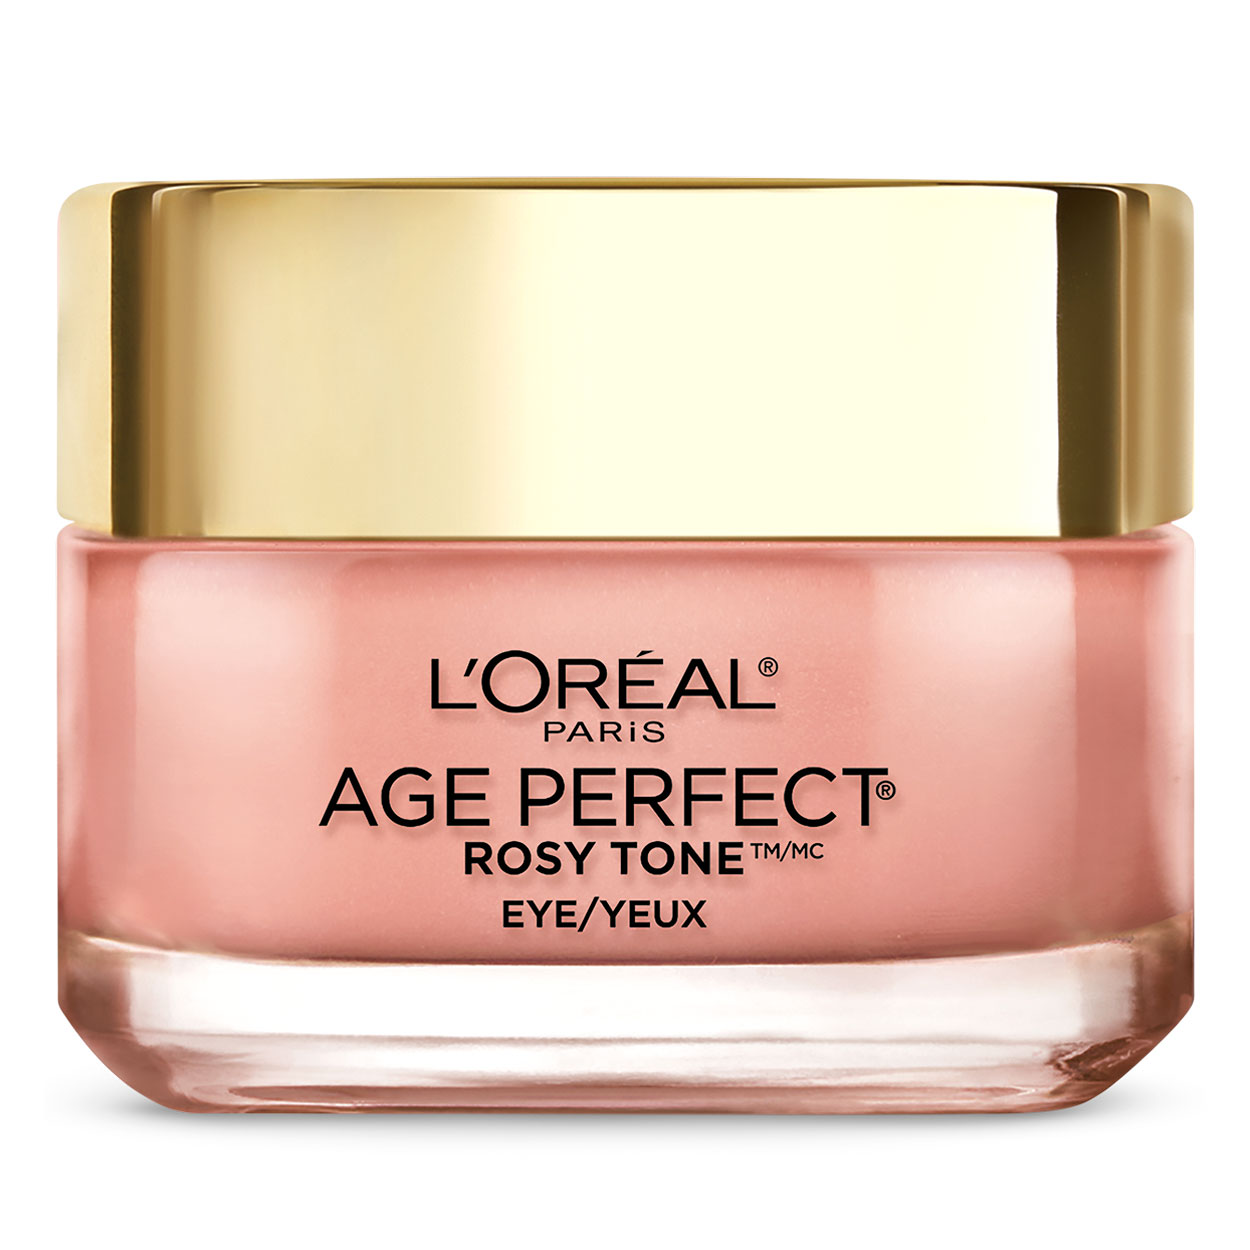 L'Oreal Paris Age Perfect Rosy Tone color correcting eye cream